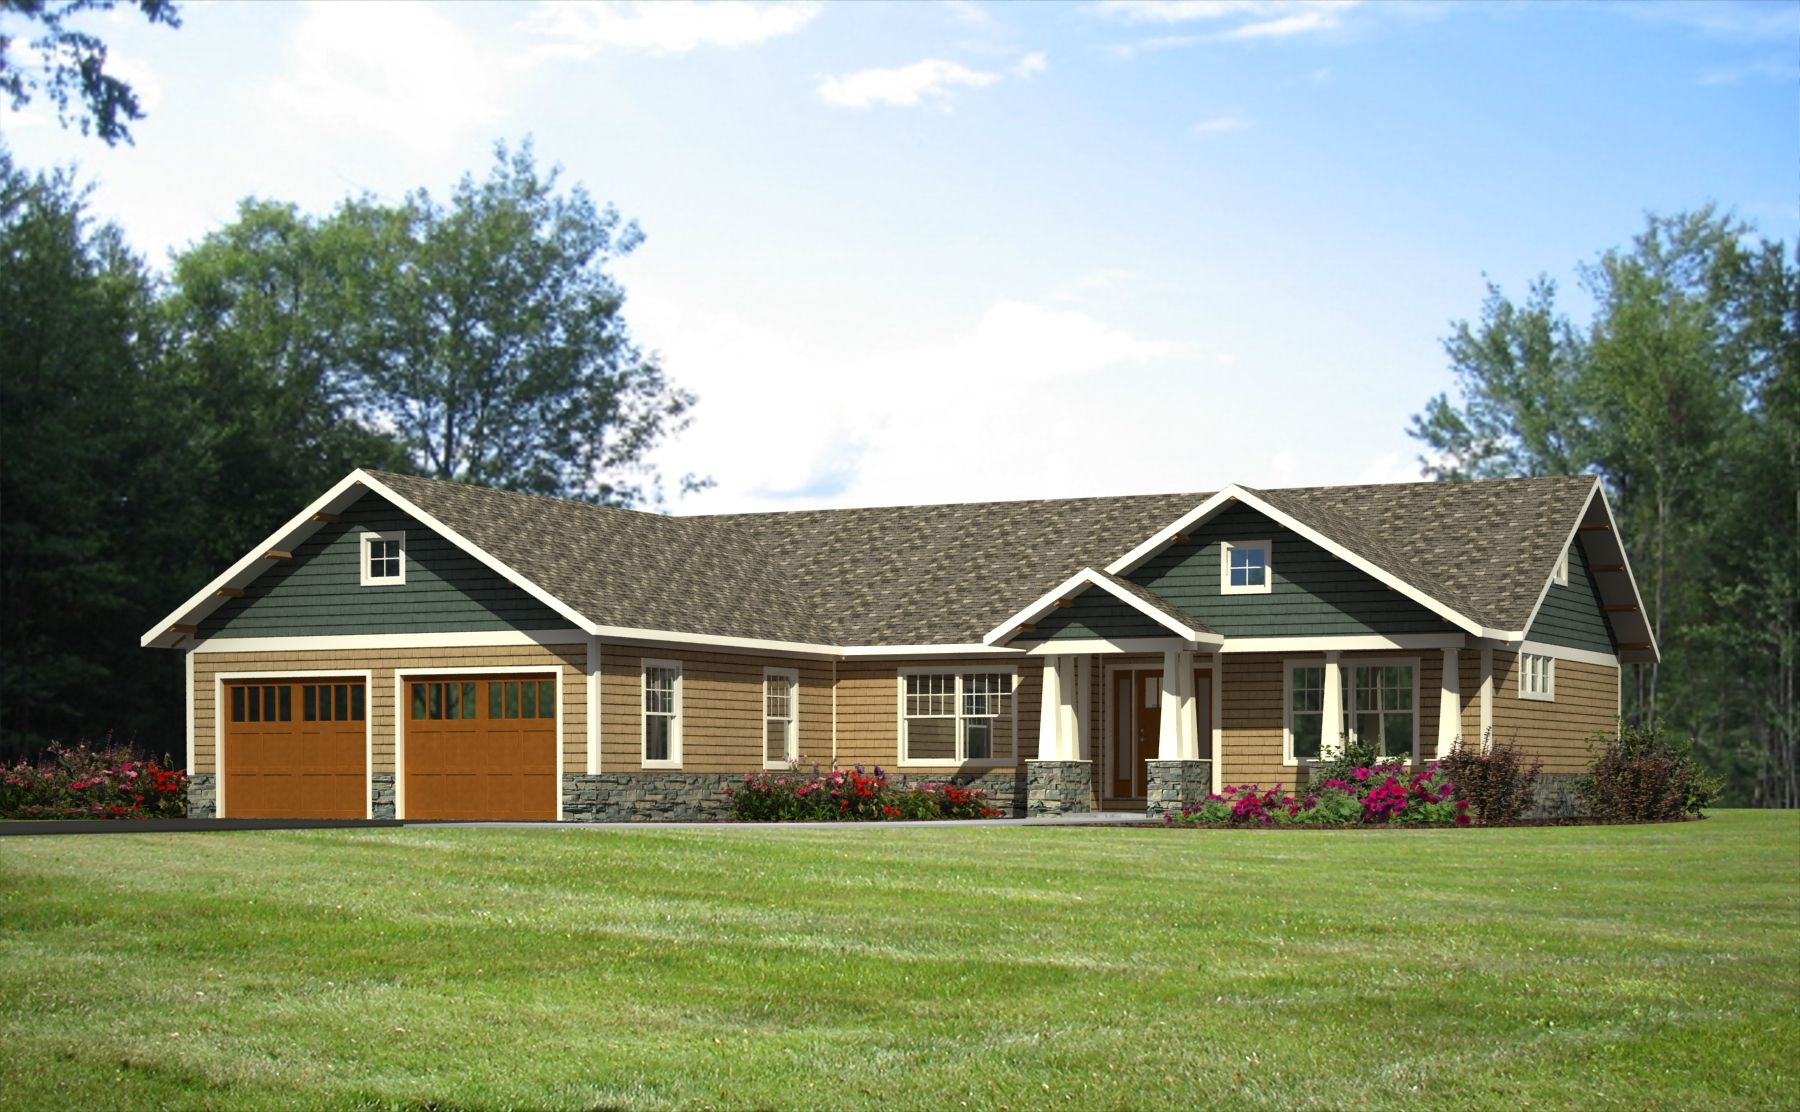 The Hunter 1 680 S F 3 Bedrooms 2 Baths Craftsman Bungalow House Plans Wausau Homes Modular Homes